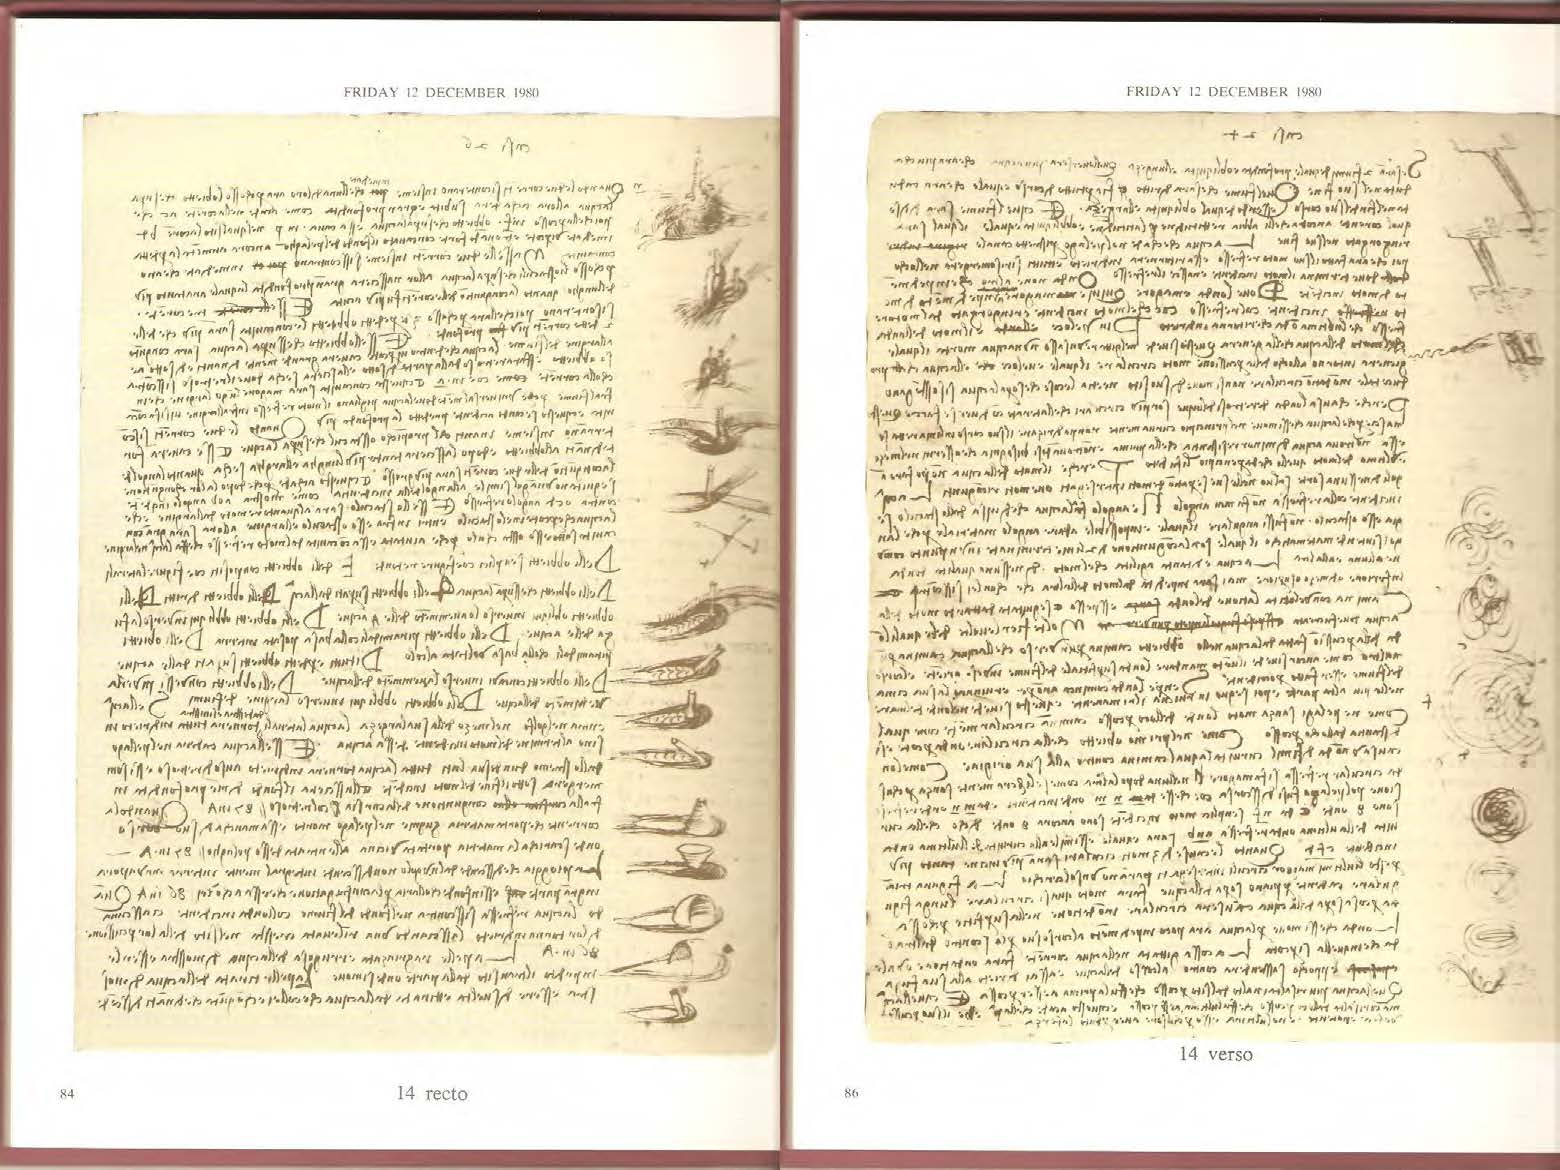 Codex_Leicester_Page_15_Image_0001.jpg